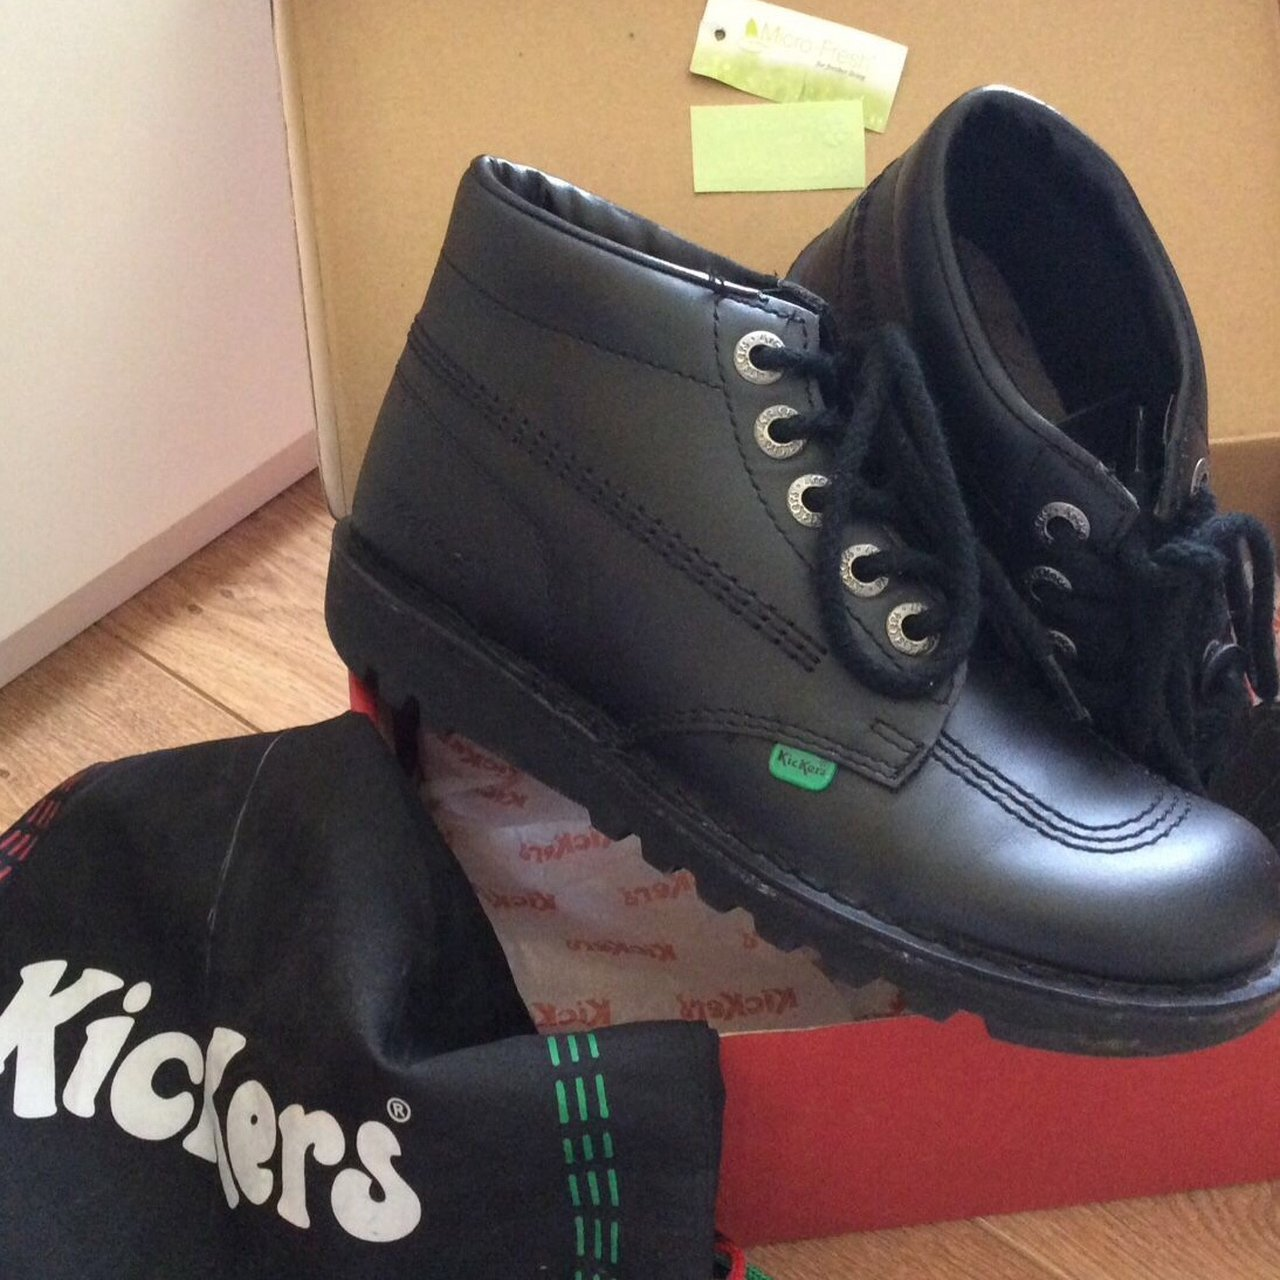 Size 5 Kickers School Shoes for women girls These are 100% - Depop 6c6b910a7